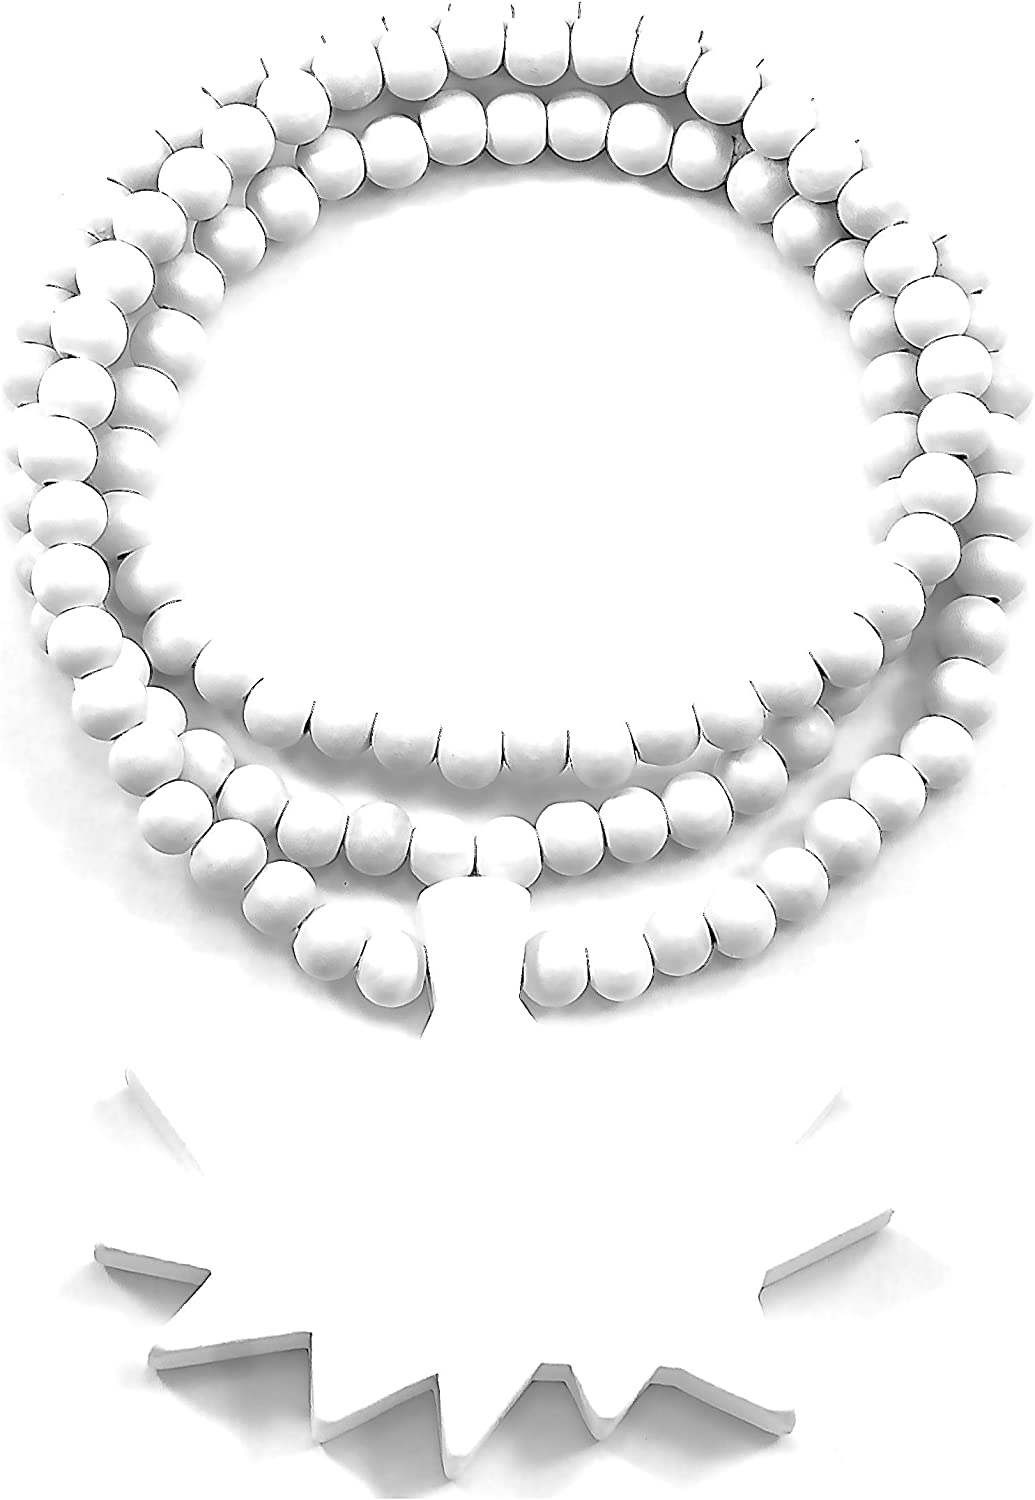 GWOOD POW Good Wood Pendant Replica 36 Inch Necklace White